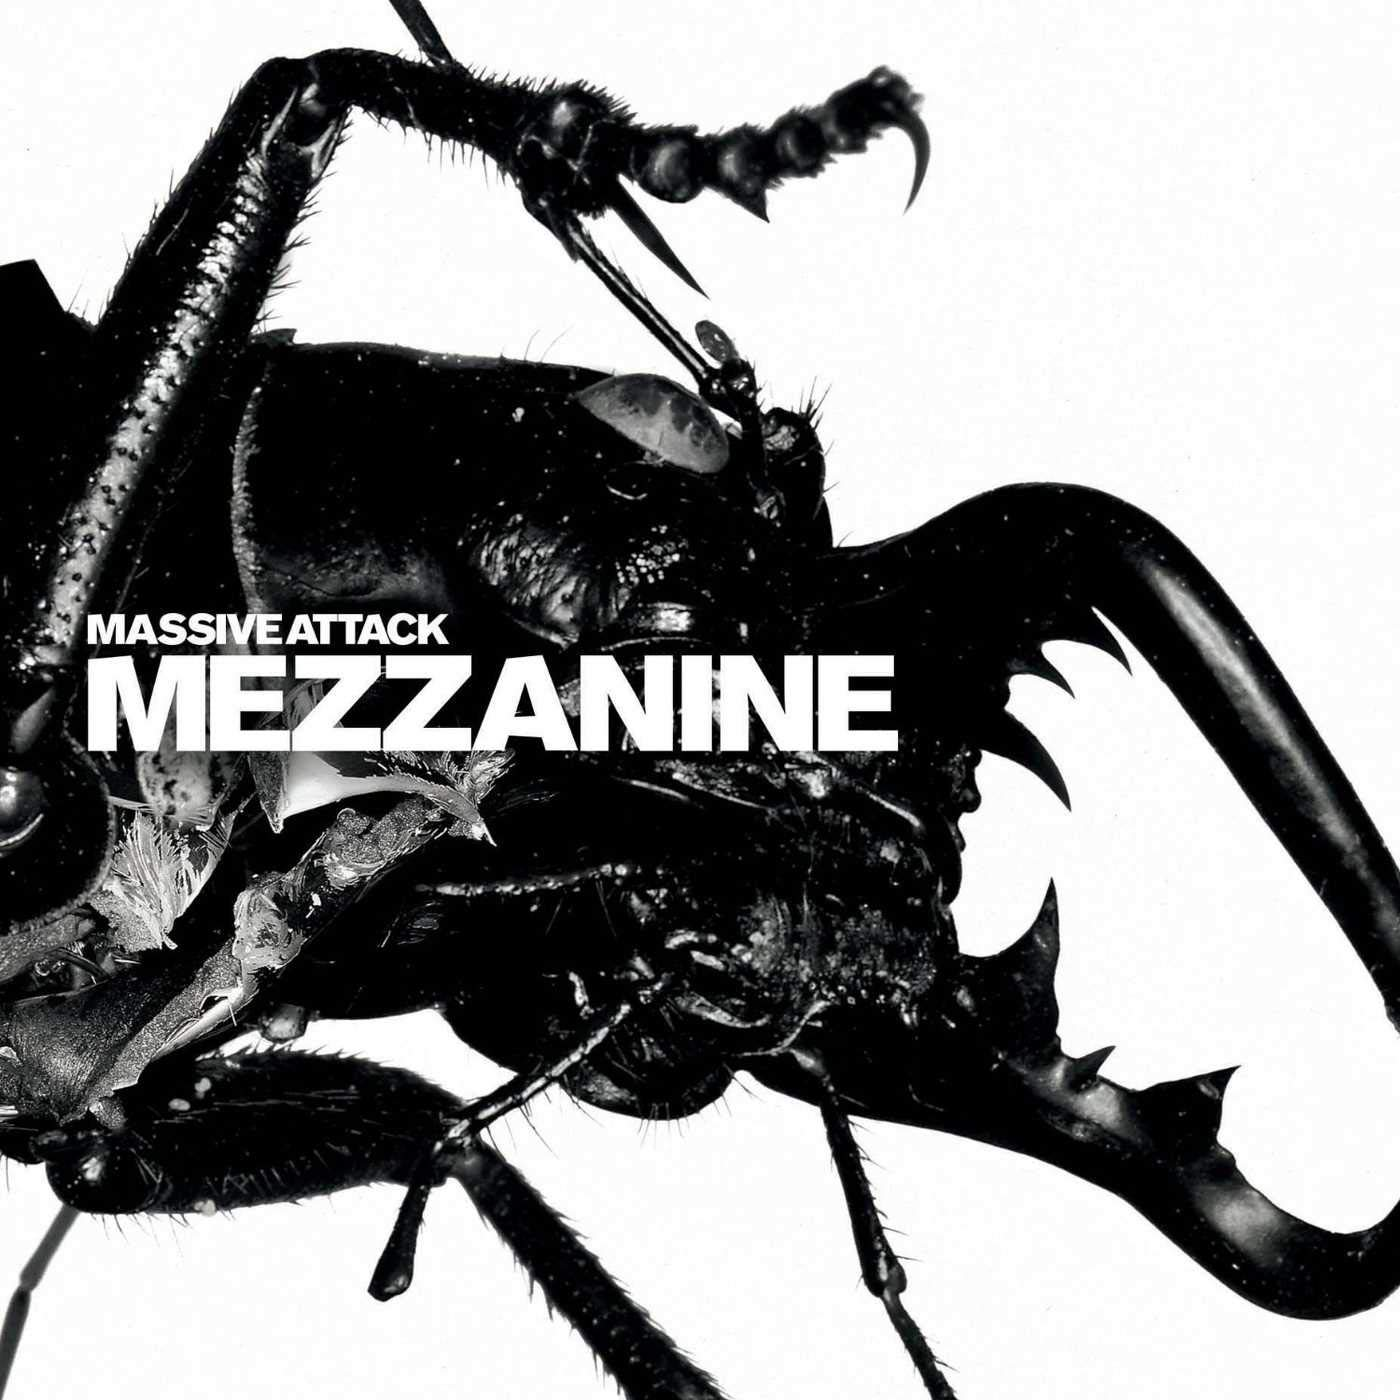 Mezzanine [2 CD][Deluxe] by Virgin